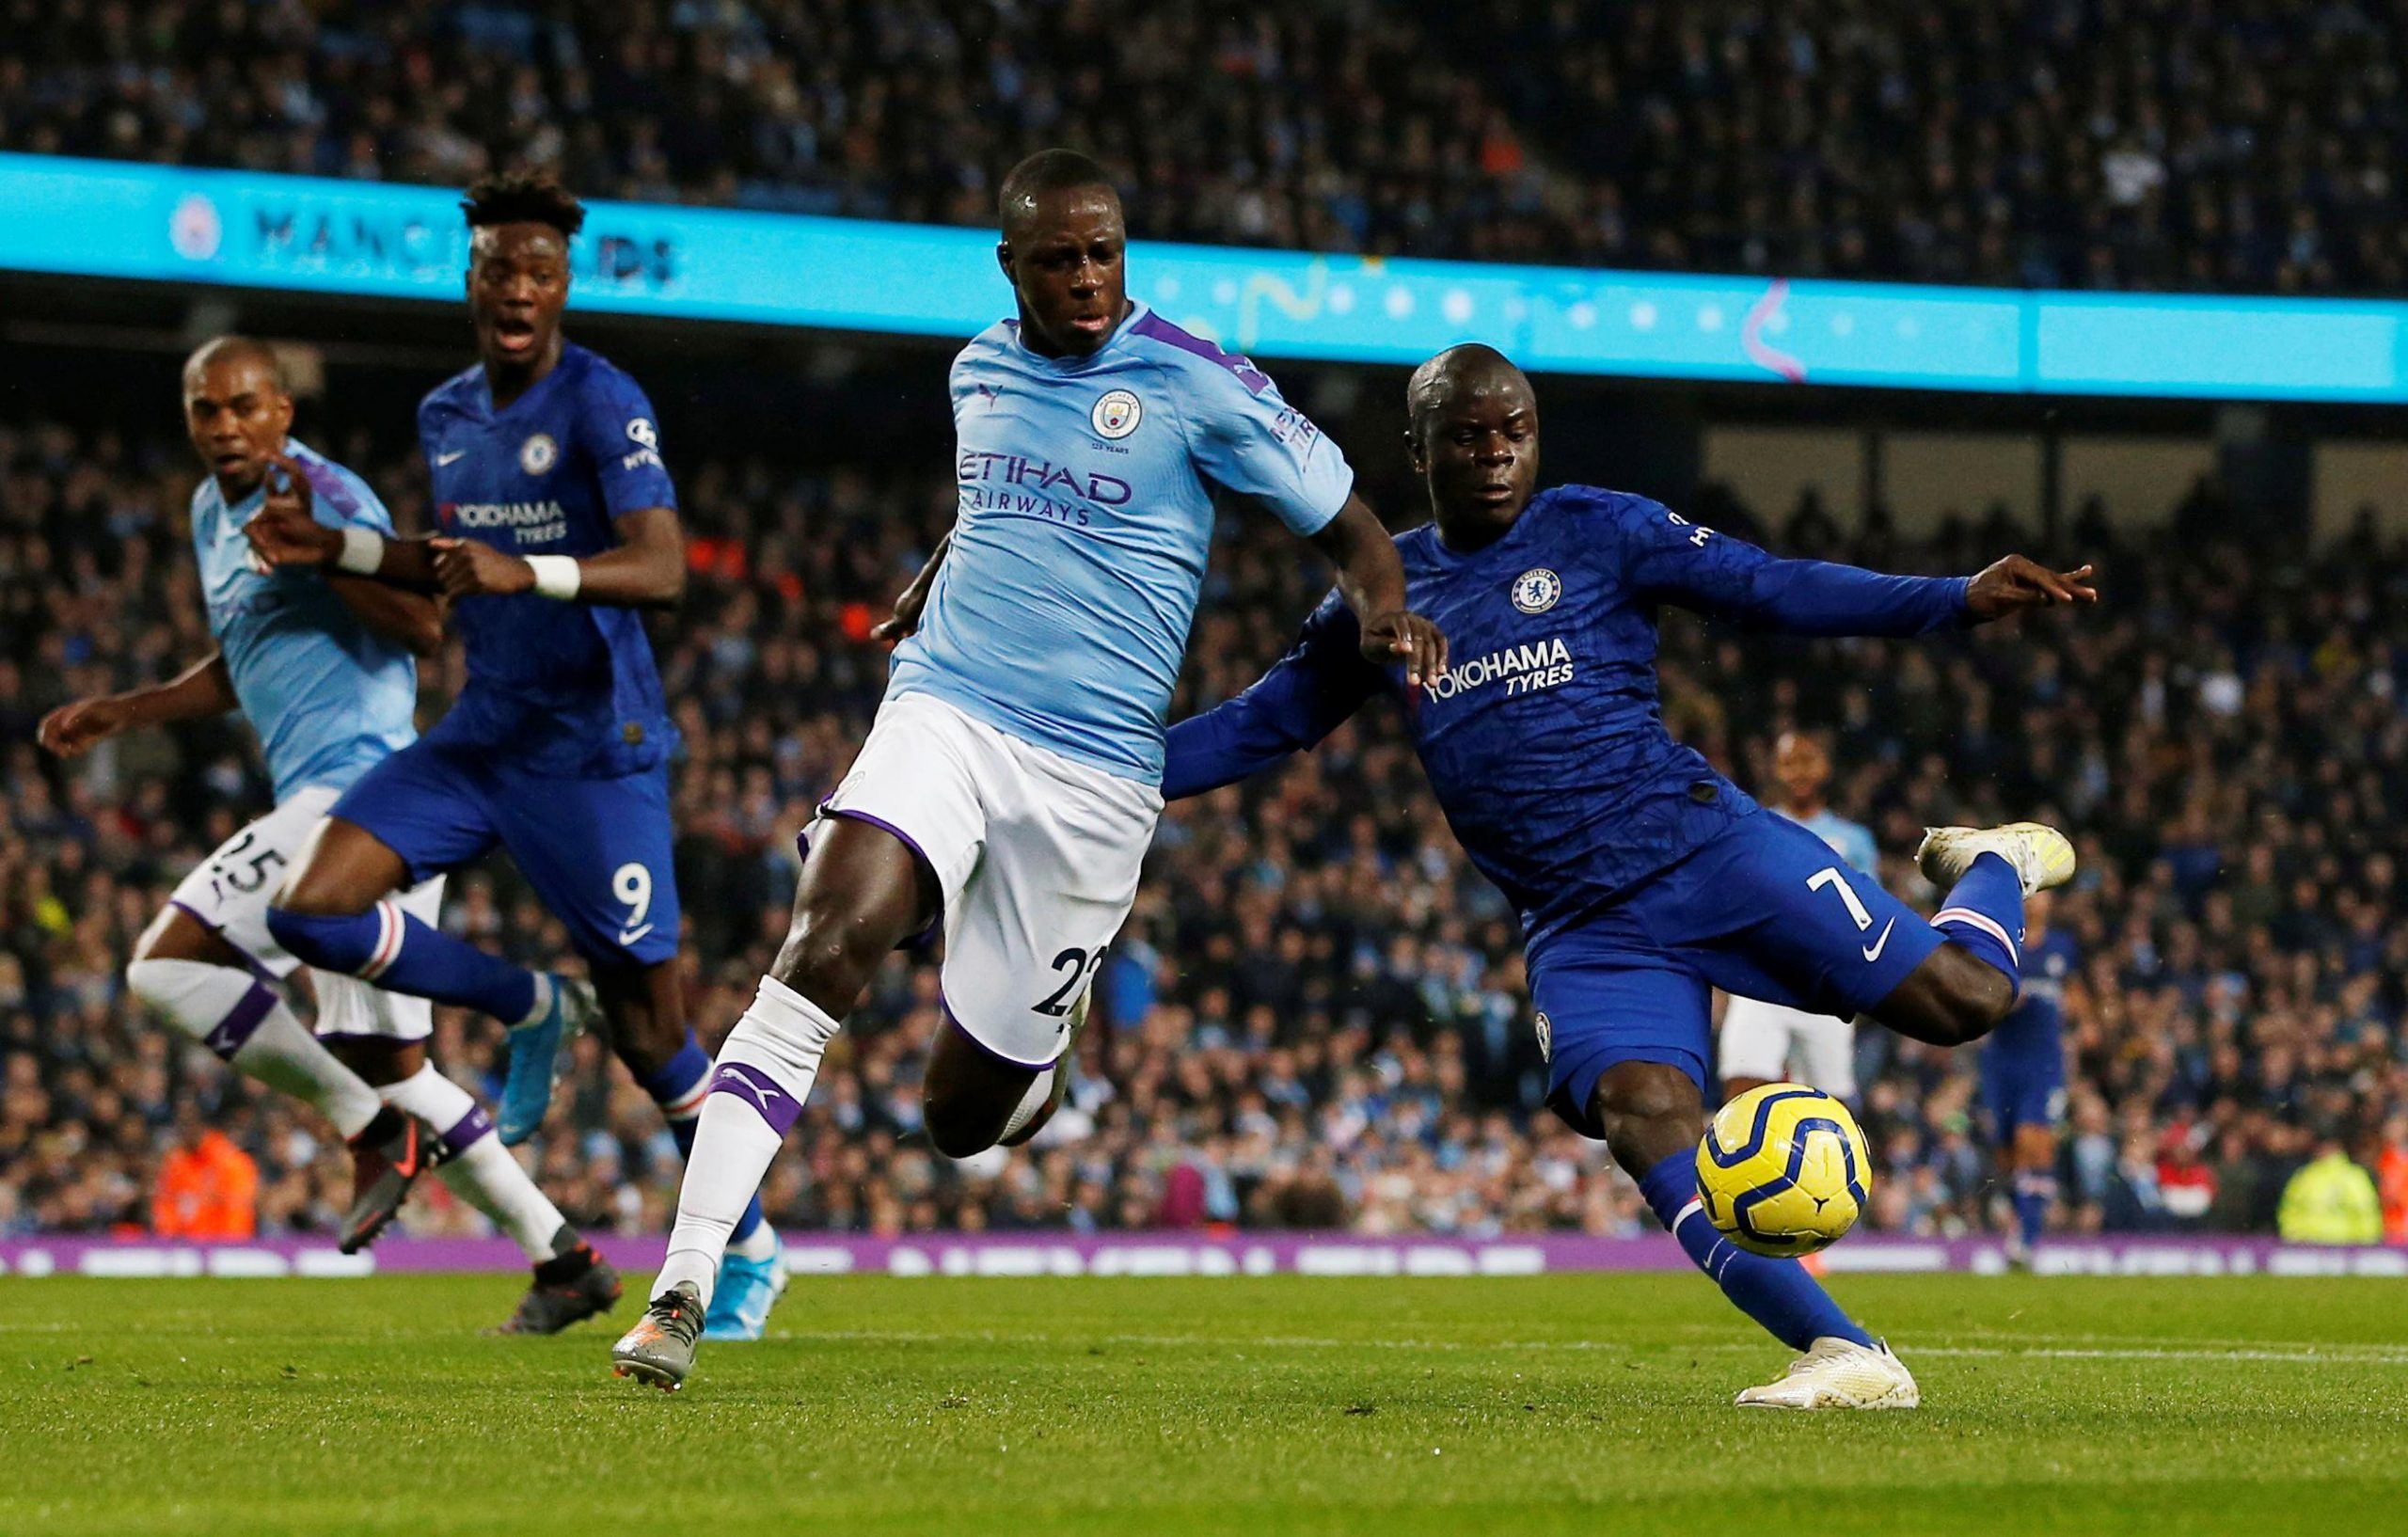 EPL: Man City Rally Back To Beat Chelsea 2-1 At The Etihad